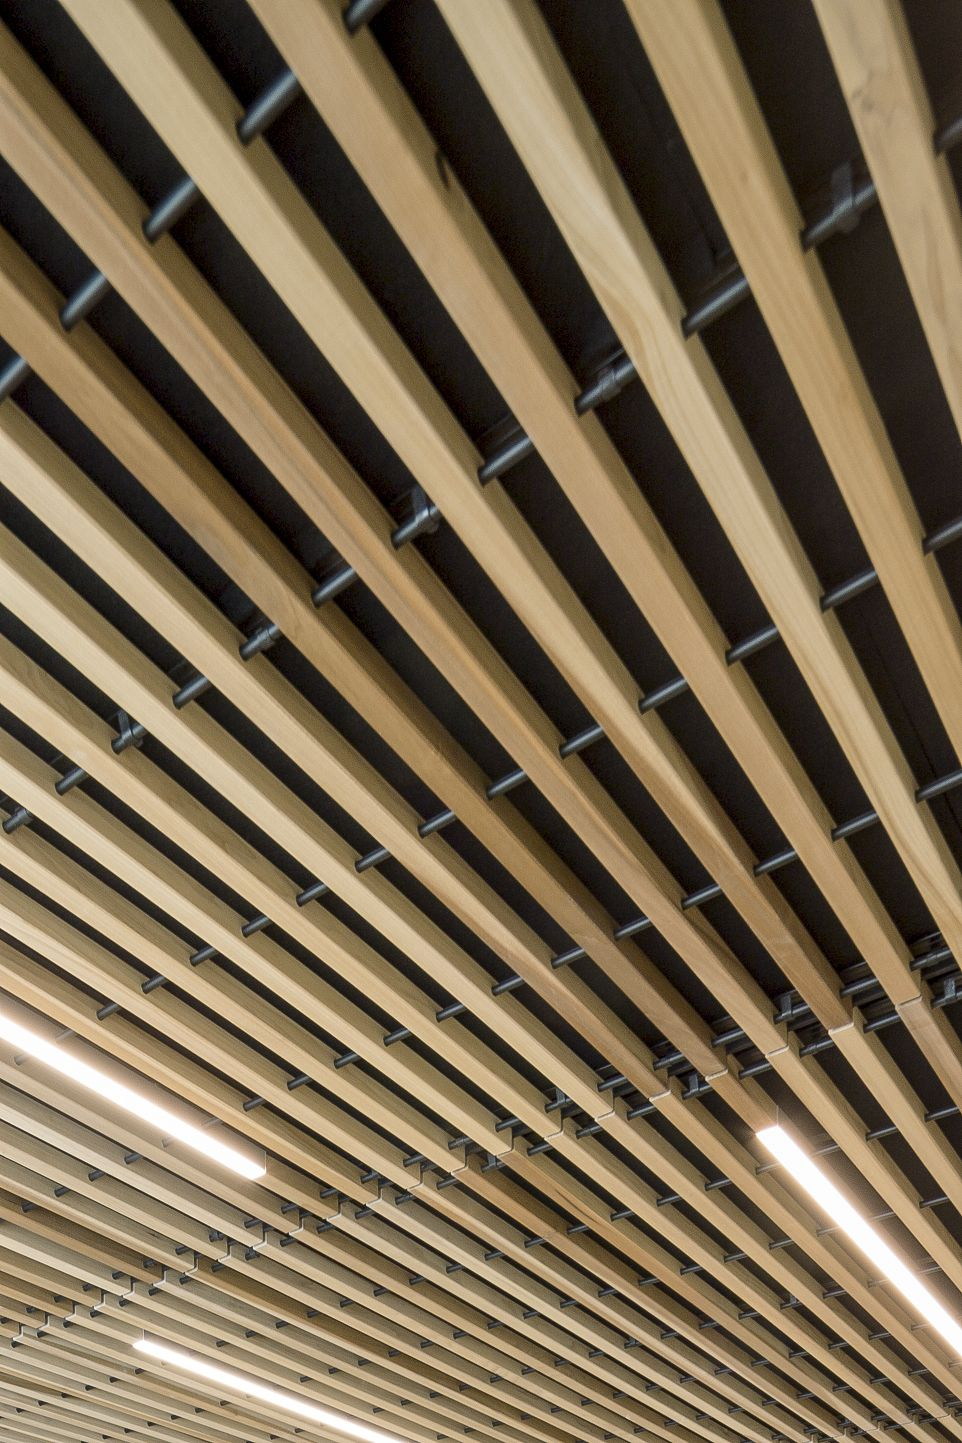 Wood Ceiling Close Up Architecture Project Koninklijke Golfclub